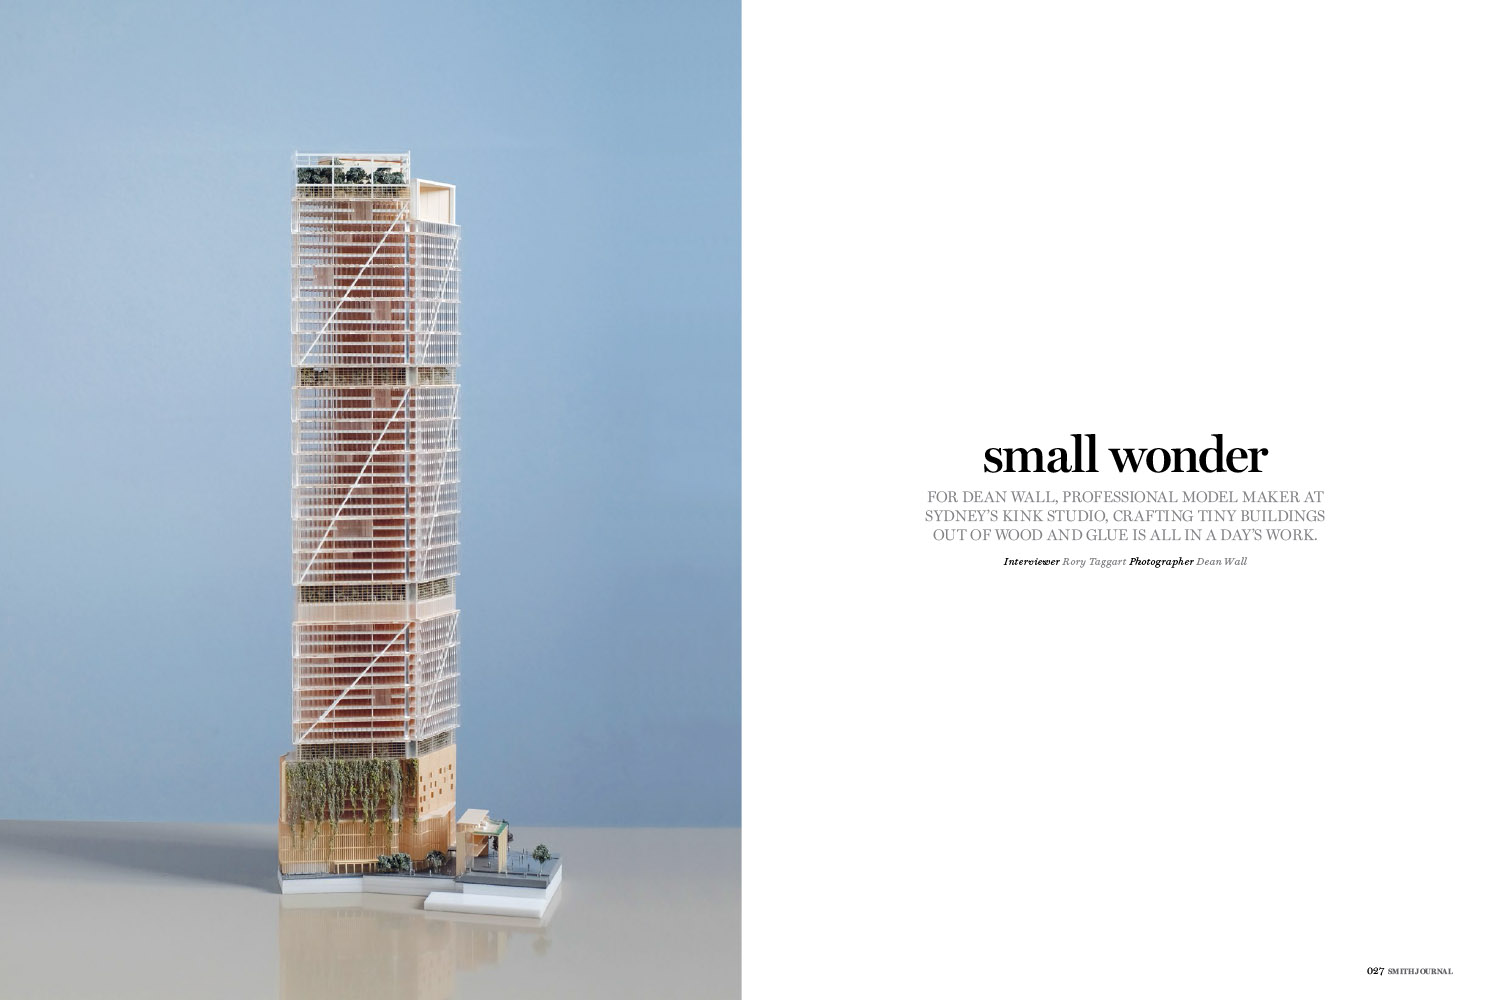 SMALL WONDER: Smith Journal Magazine interview of Architectural Model Maker